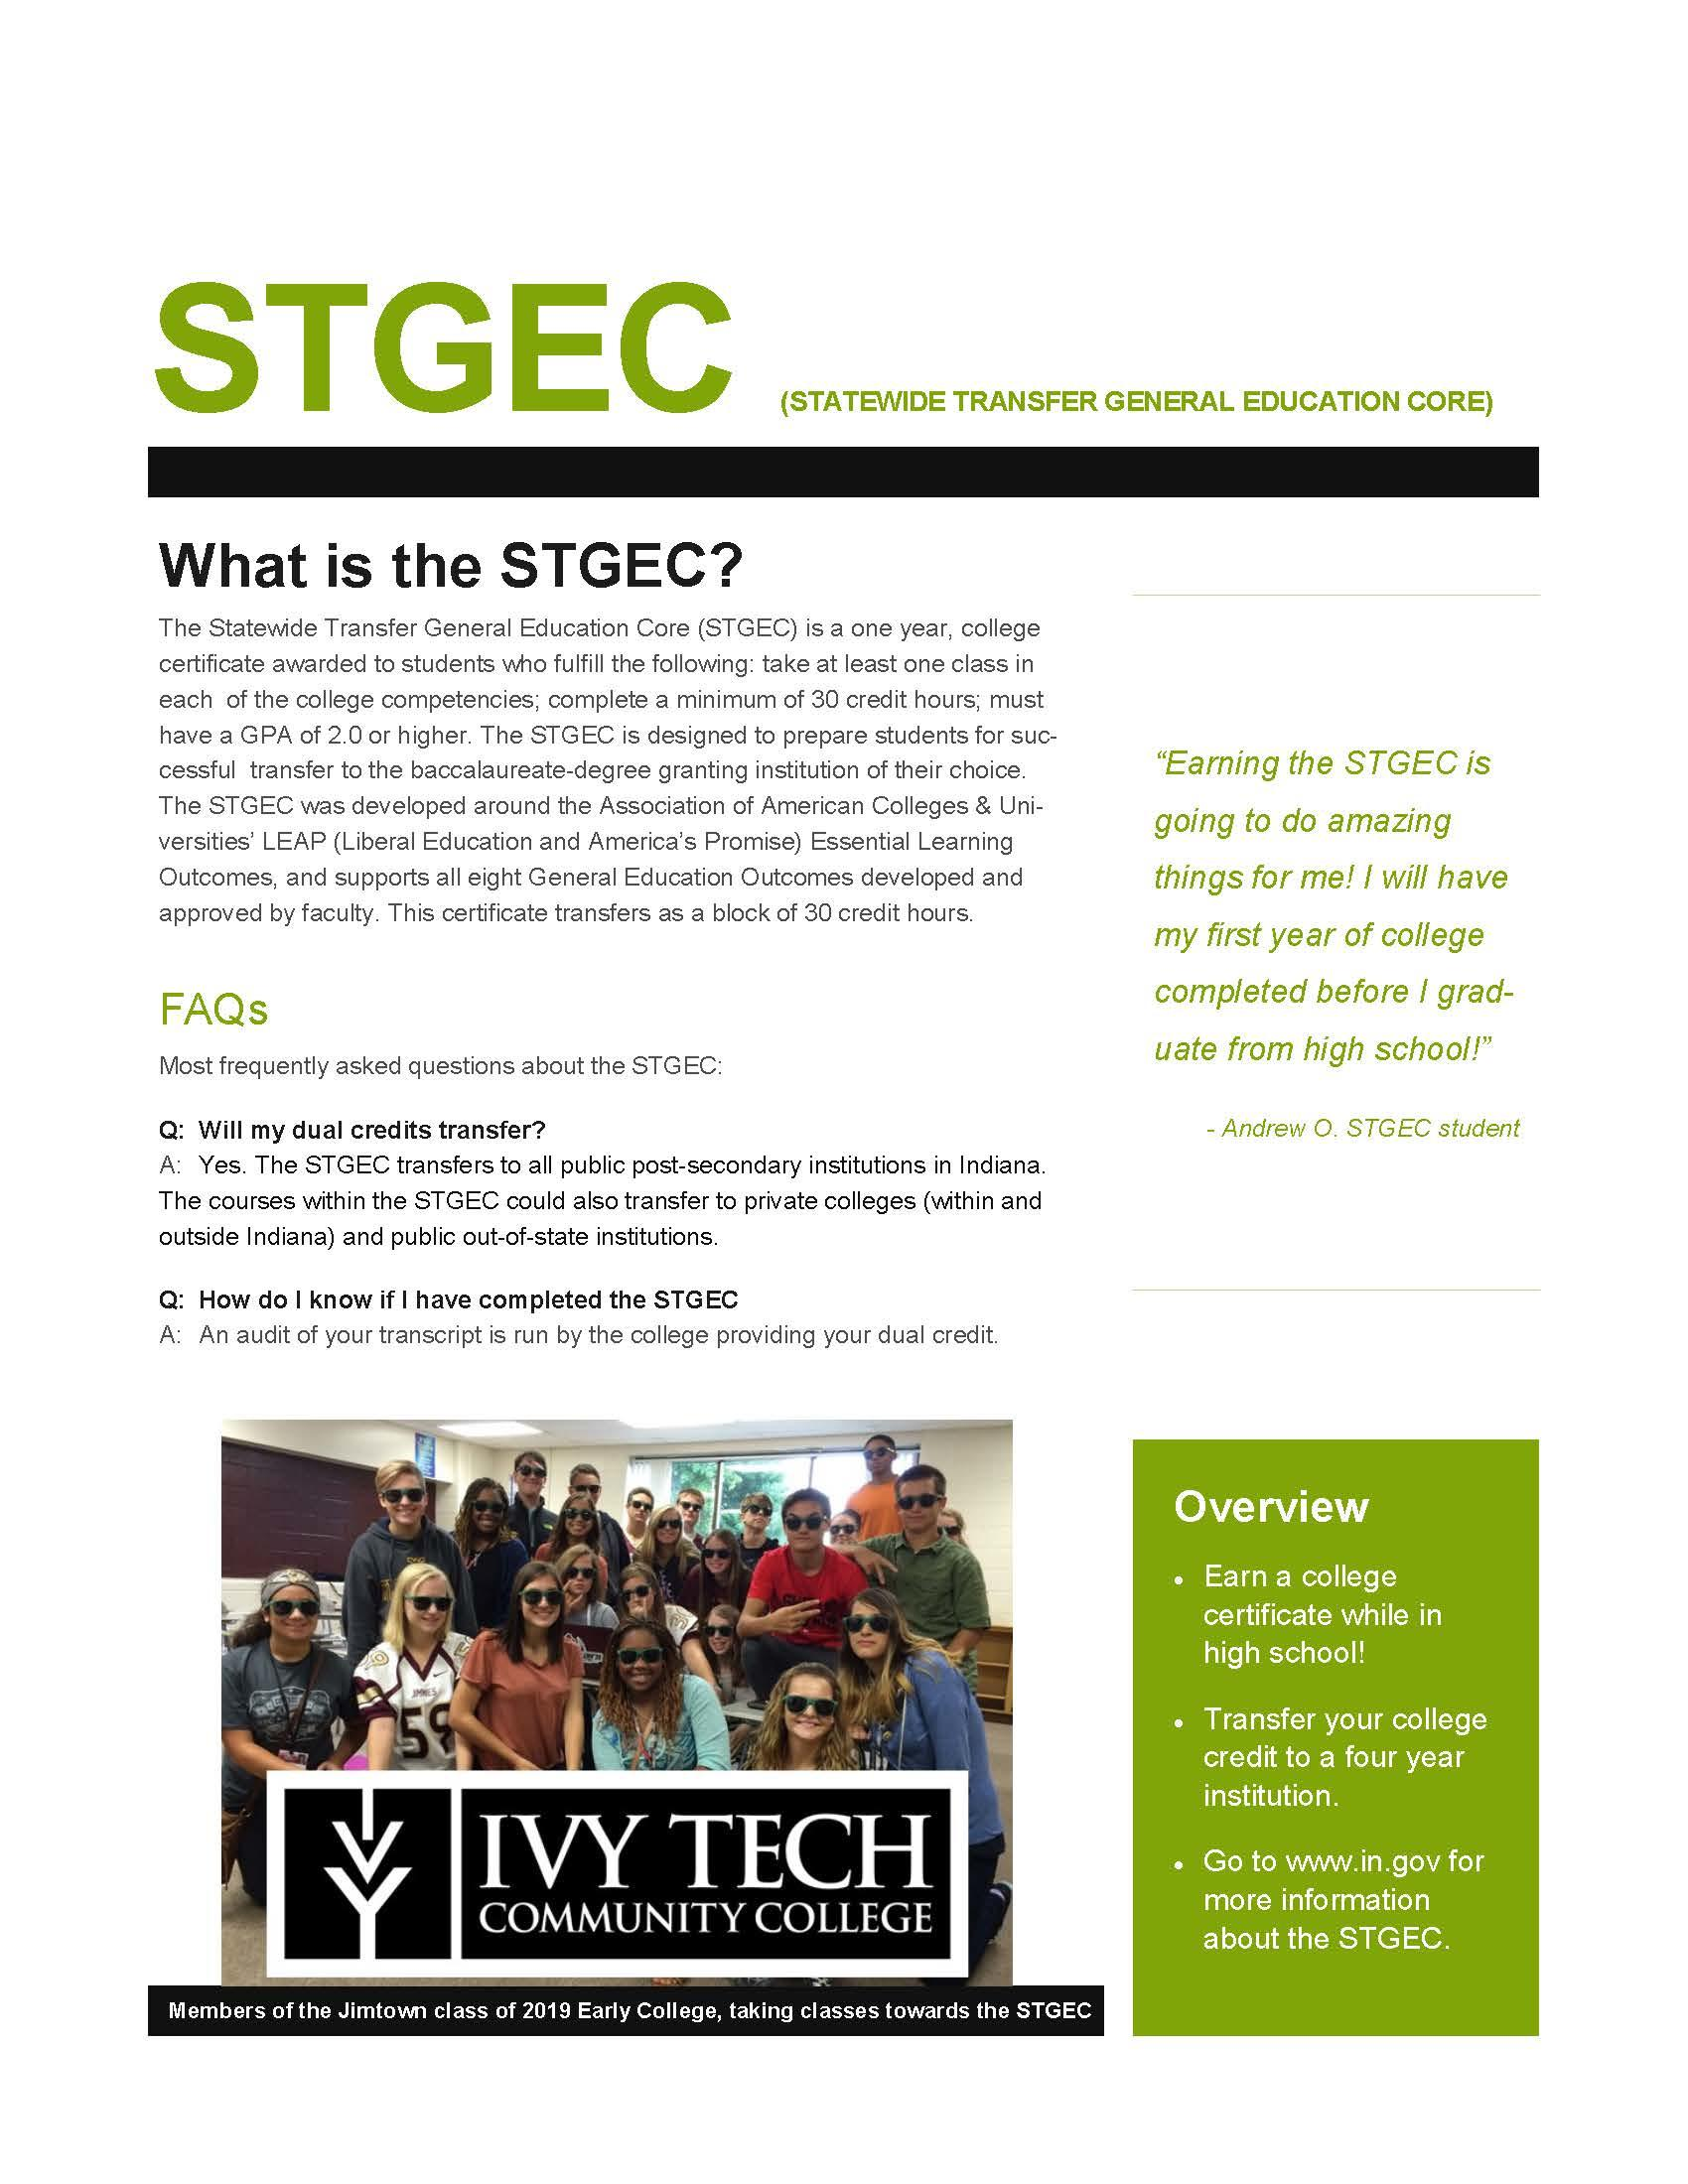 STGEC STATEWIDE TRANSFER GENERAL EDUCATION CORE - image of PDF that is attached and posted below